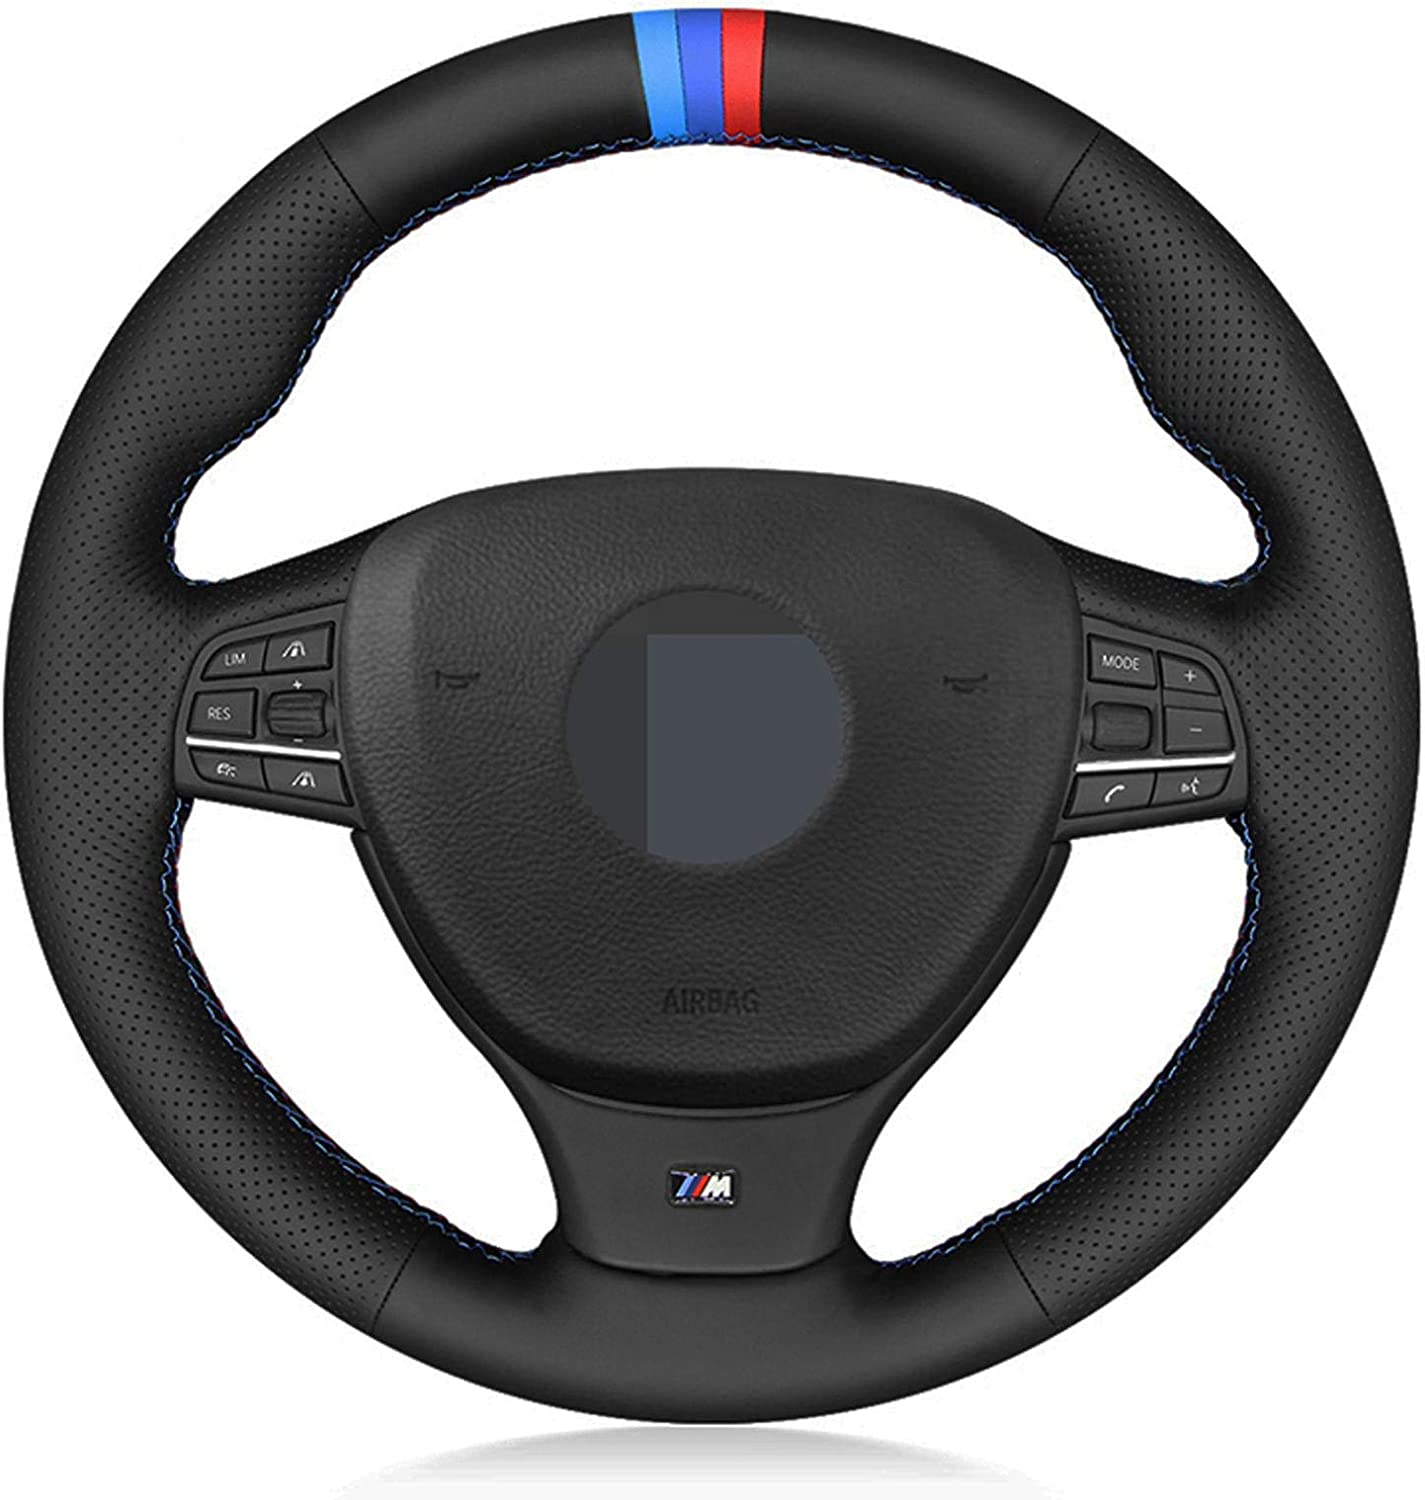 QIANKUNXIAN Deluxe Car Steering Wheel Cover specialty shop Leather Black Stitched Hand